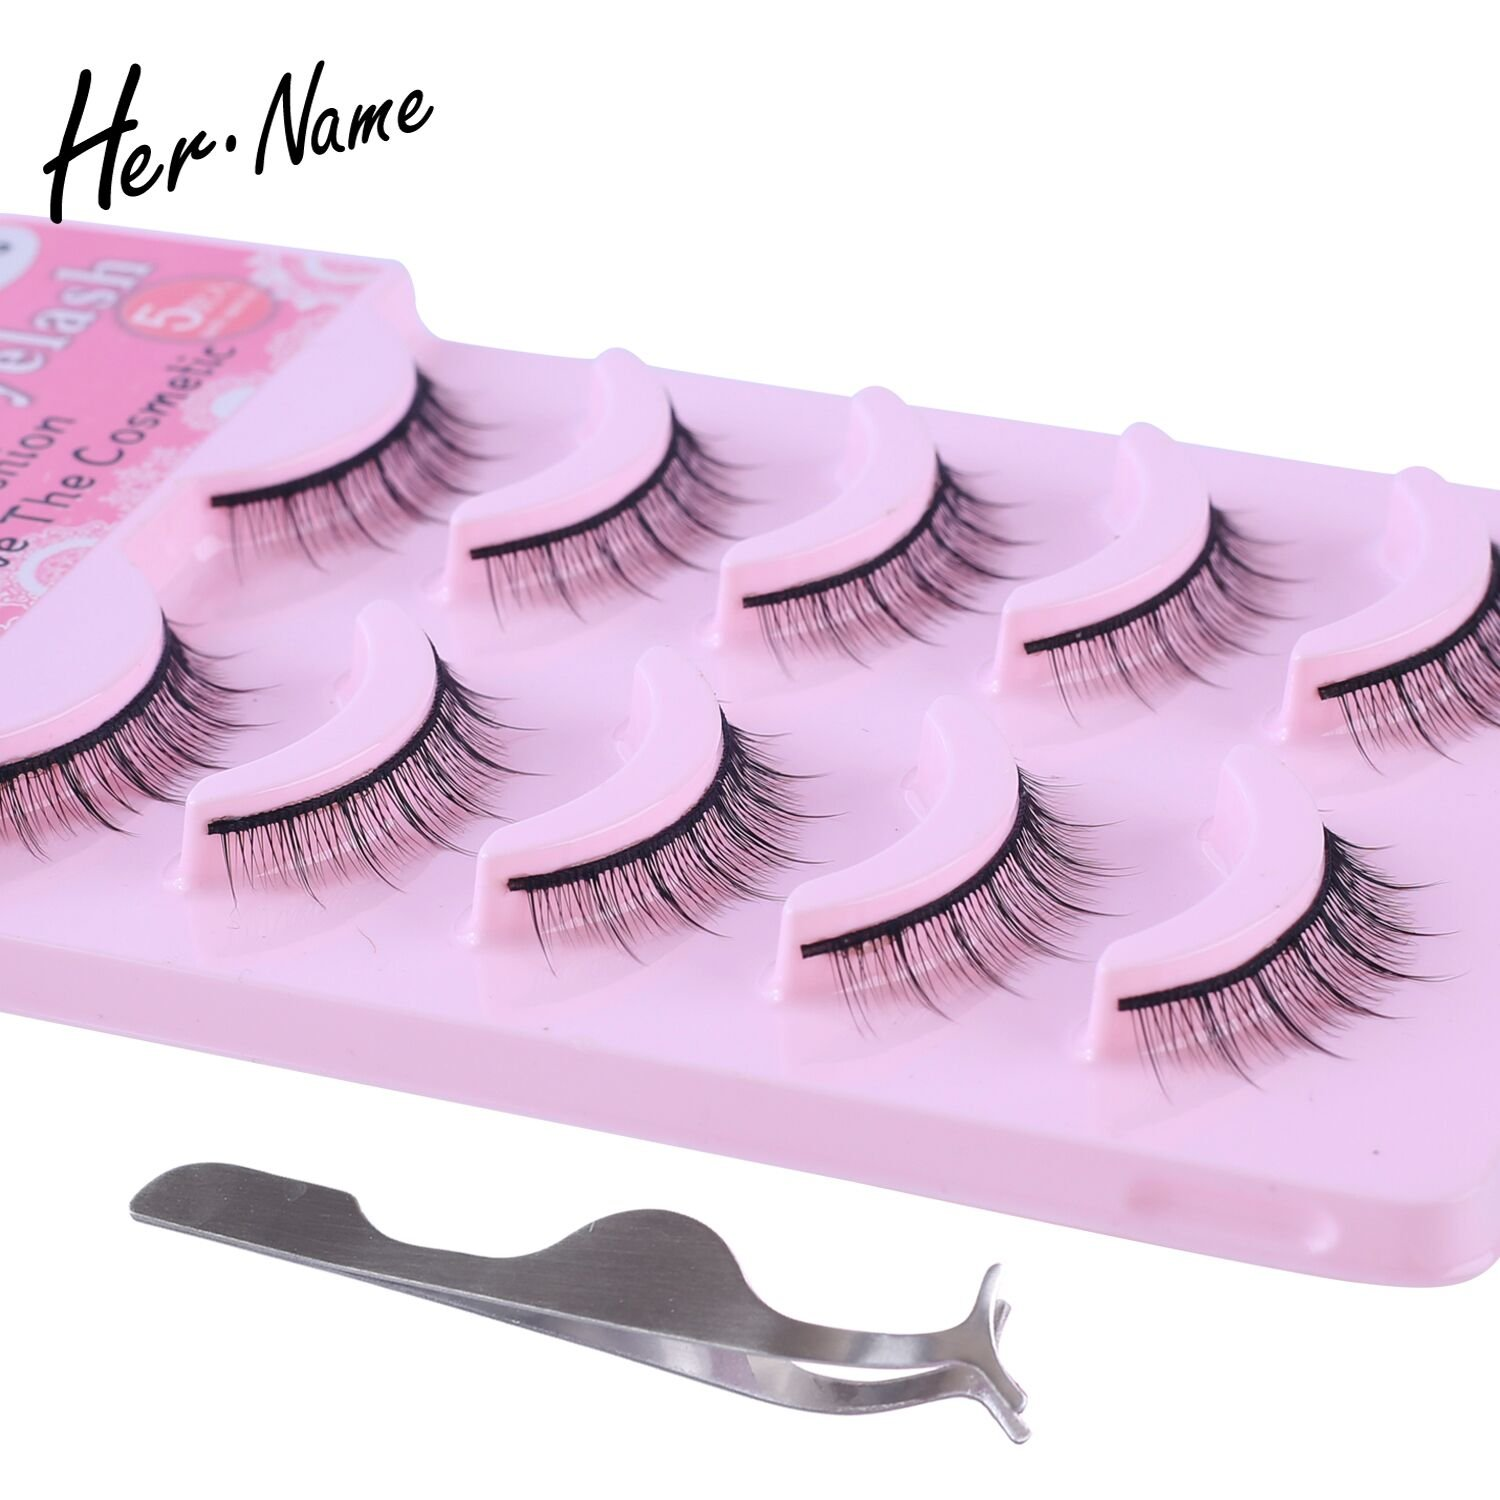 HERNAME natural short false eyelashes hot sale new fashion 100% makeup tools handmade glue for eyelash 5 pairs fake eye flash Her name